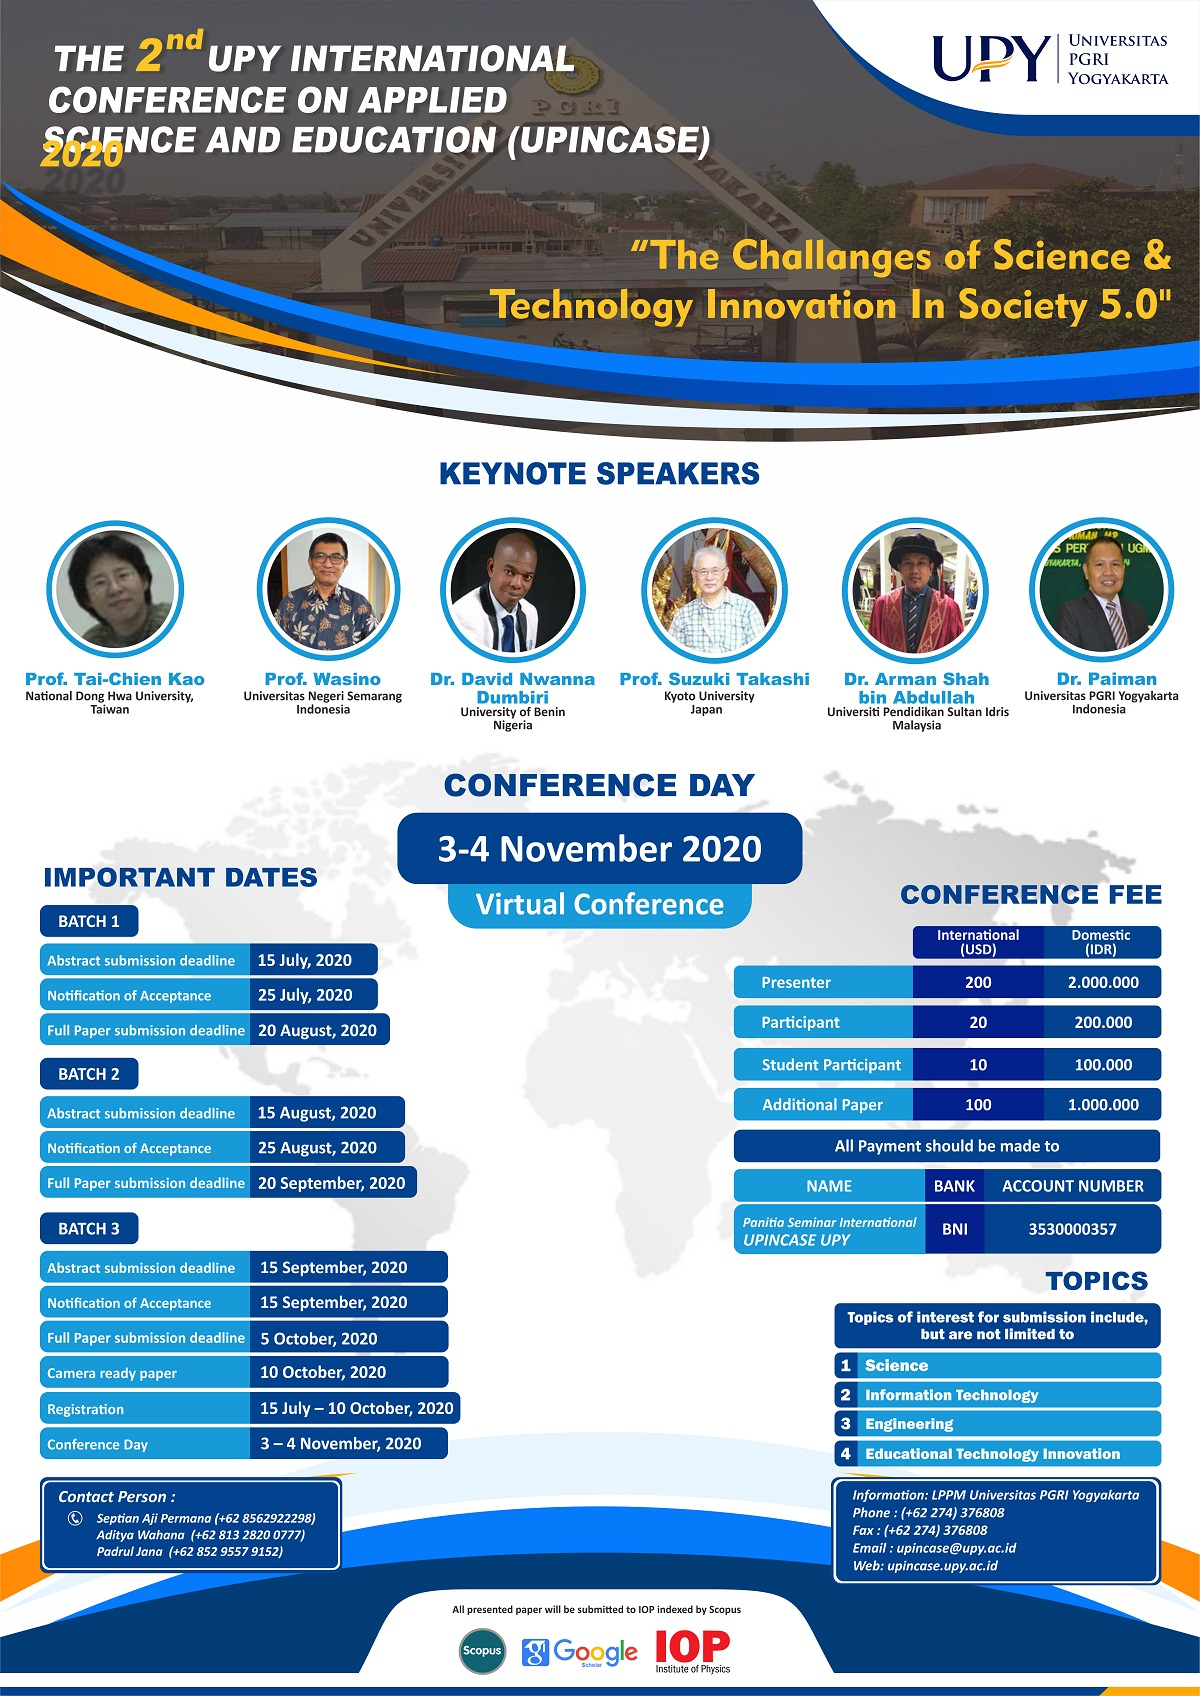 The 2nd UPY International Conference on Applied Science and Education (UPINCASE) 2020